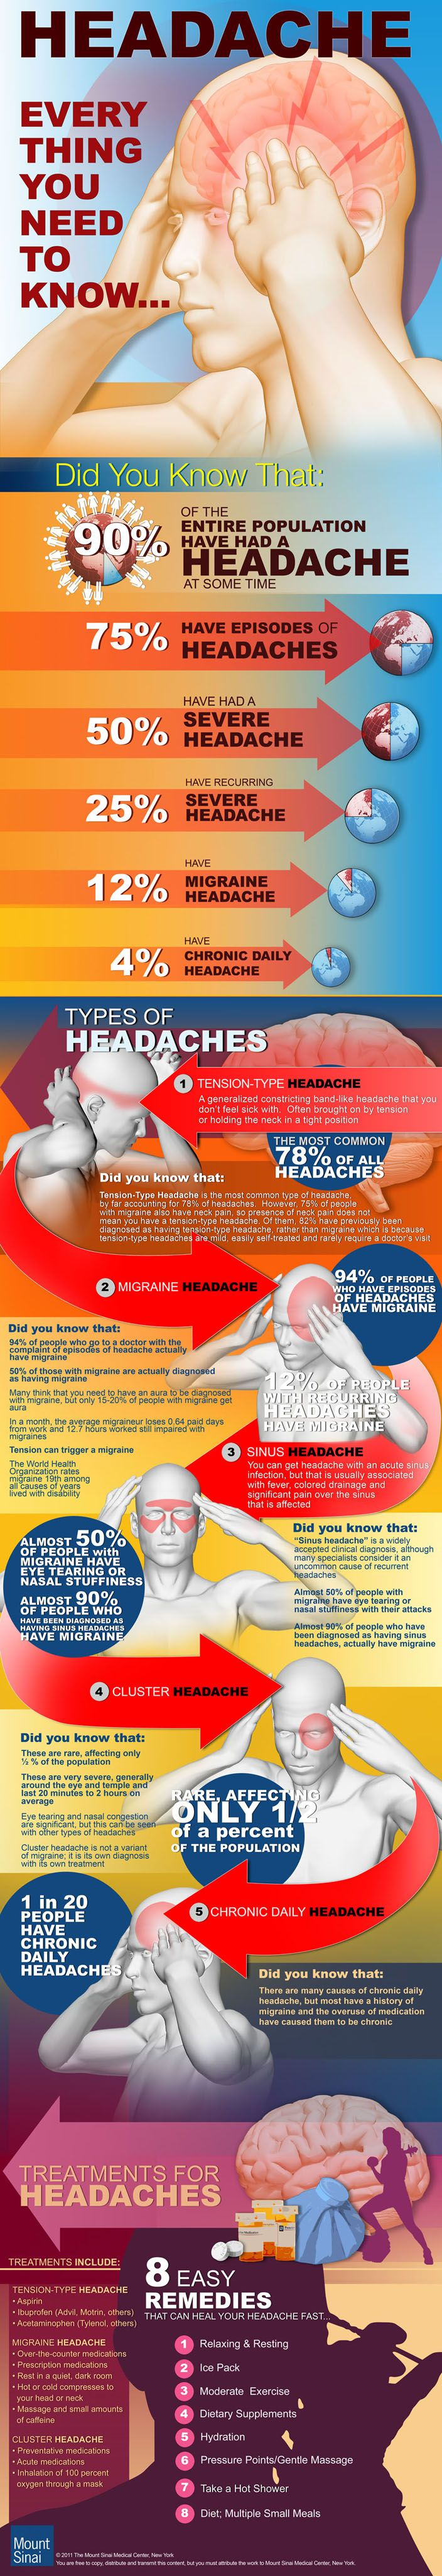 This infographic provides information about headaches. It provides a description of different types of headaches and it provides a list of different t